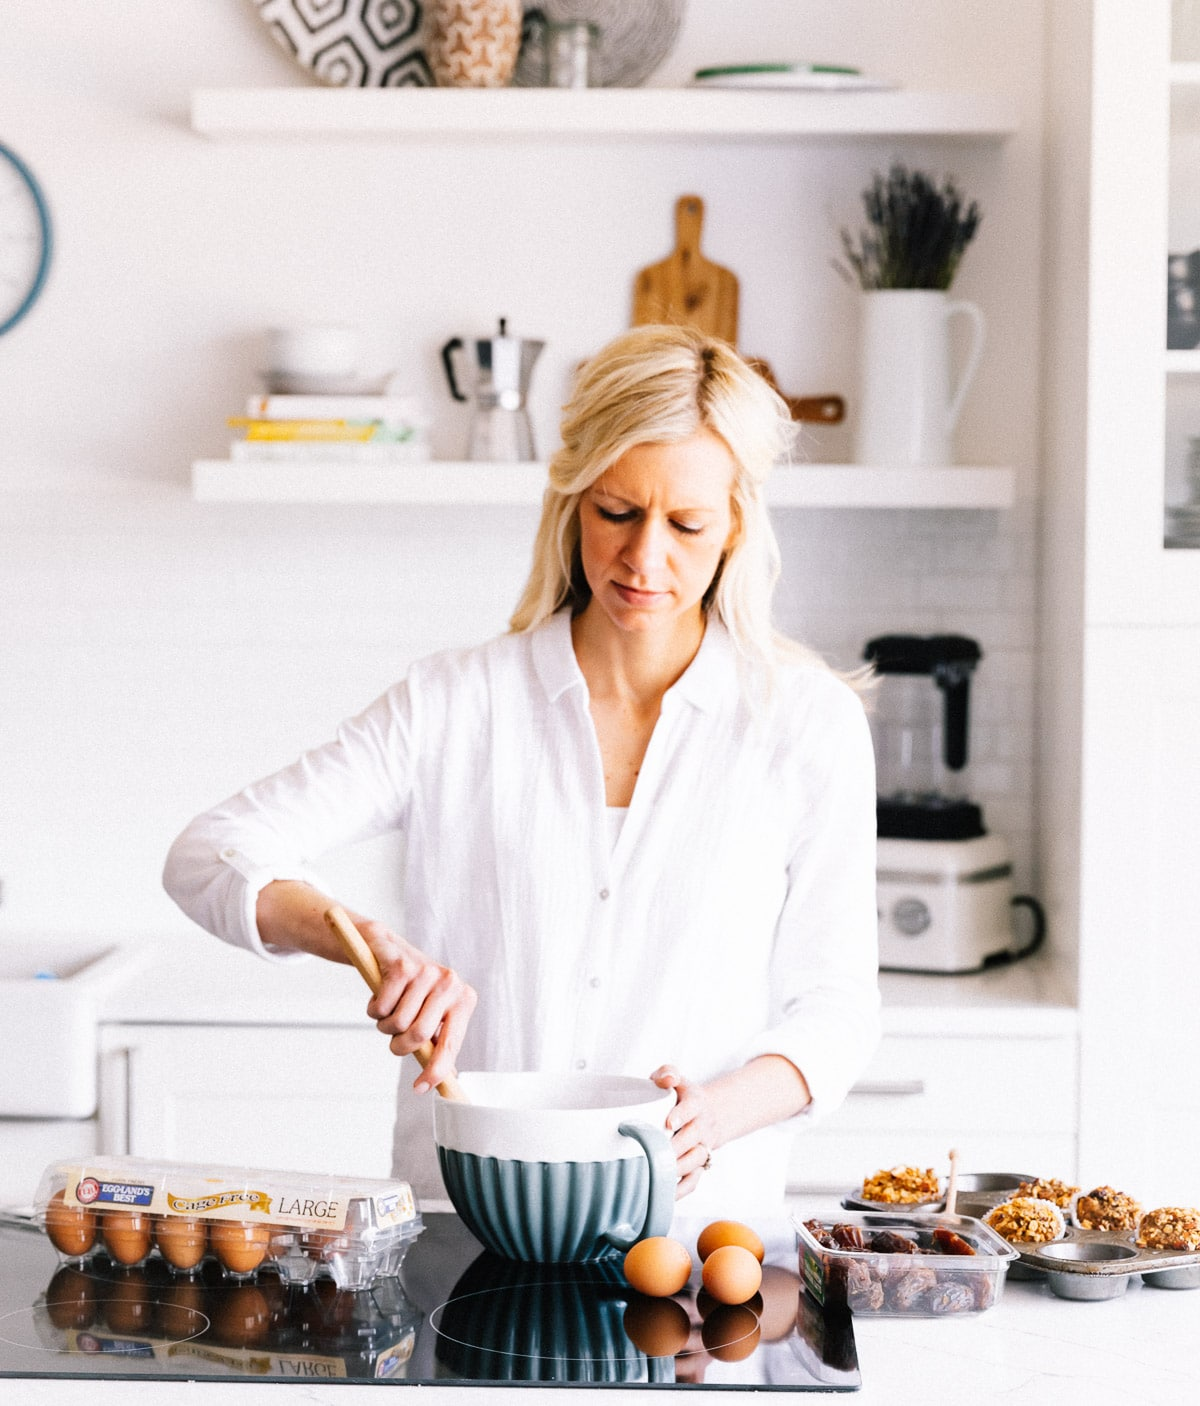 woman with blonde hair making muffins